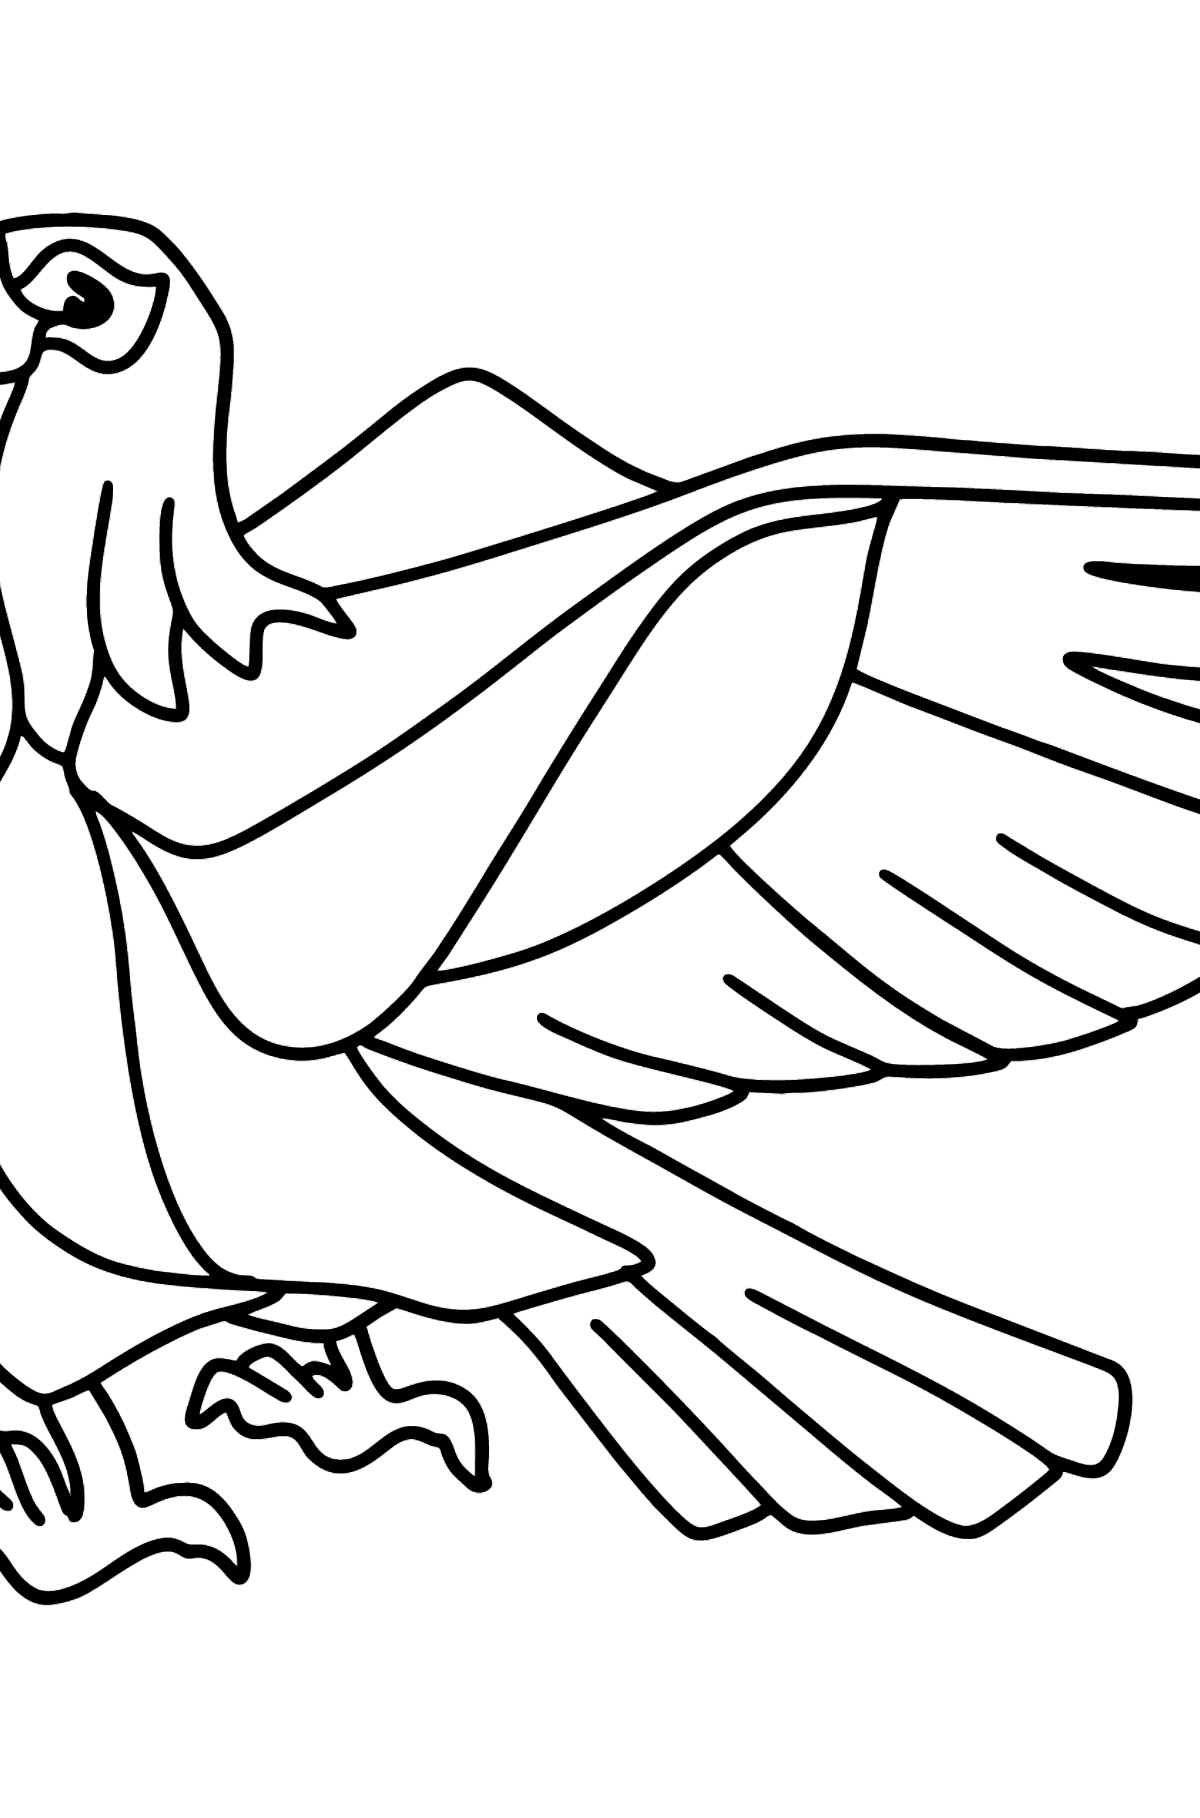 Beautiful Eagle coloring page - Coloring Pages for Kids